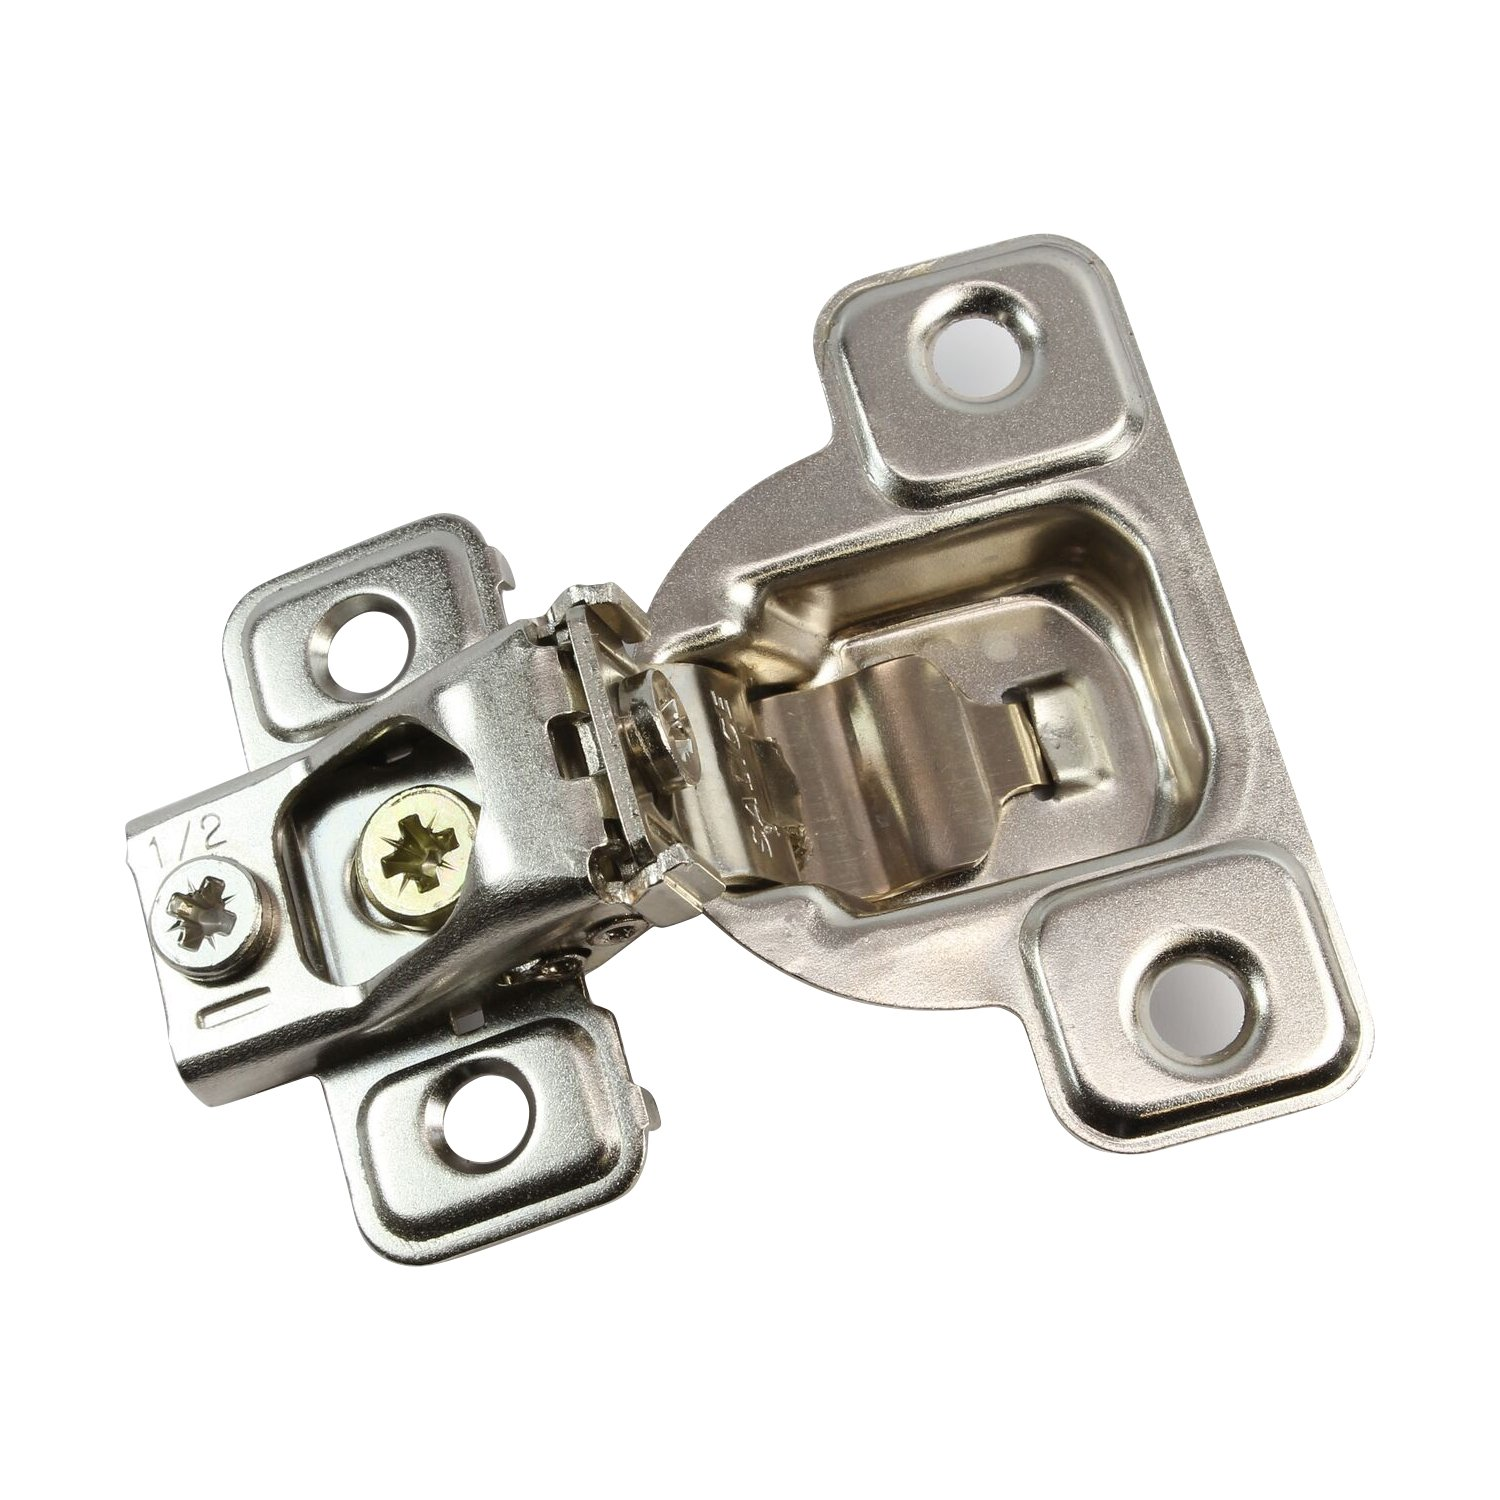 """Salice 106 Degree Excenthree 1/2"""" Overlay Screw On Self Close Cabinet Hinge with 3 Cam Adjustment CSP3799XR (5)"""